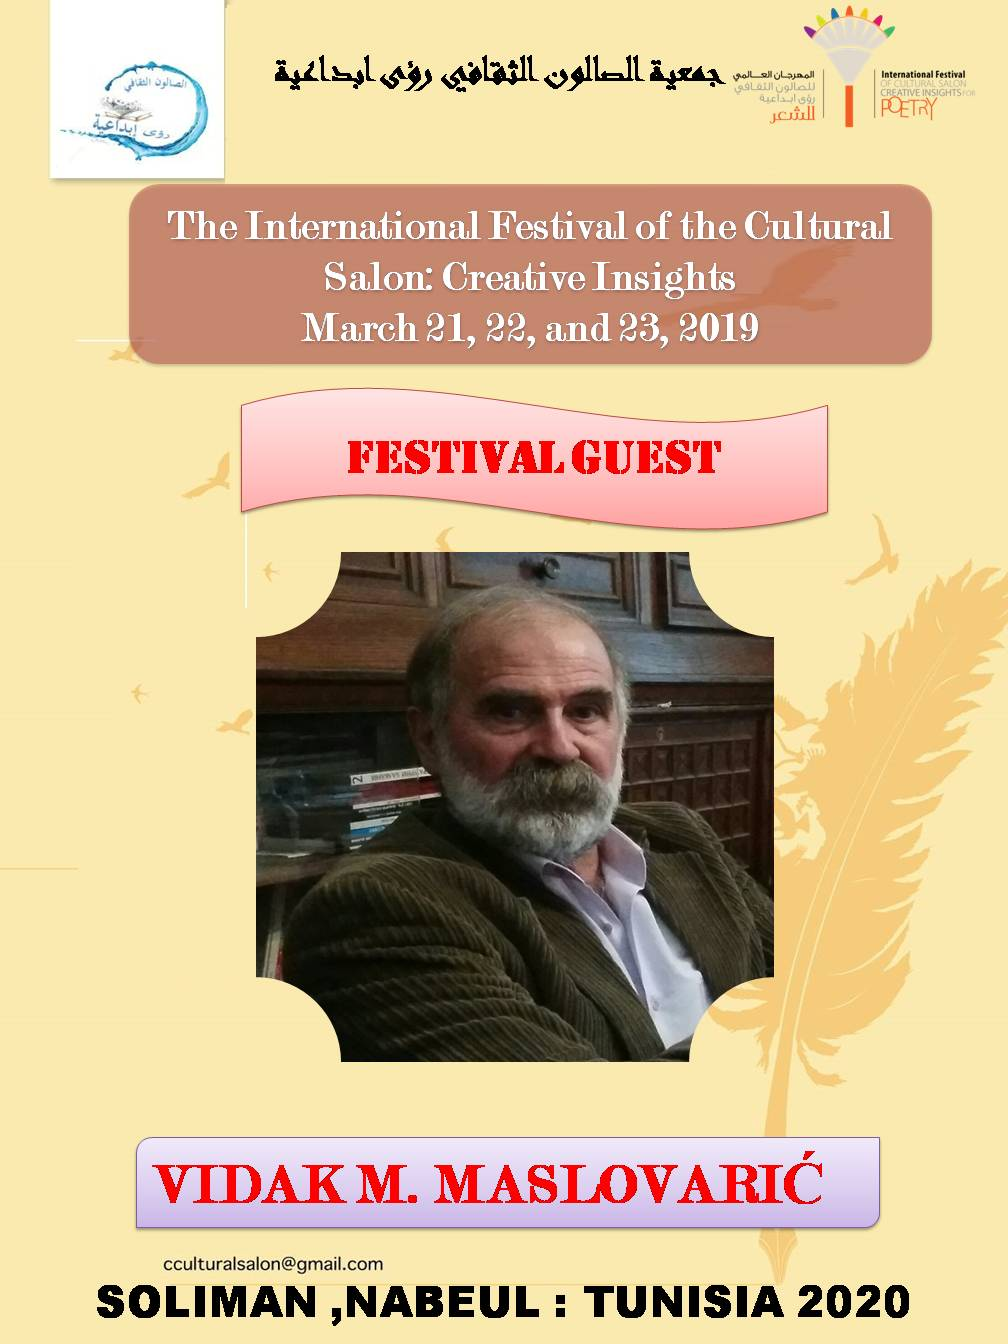 International Poetry Festival The Cultural Salon: Insights for Creativity Pictures of guest poets